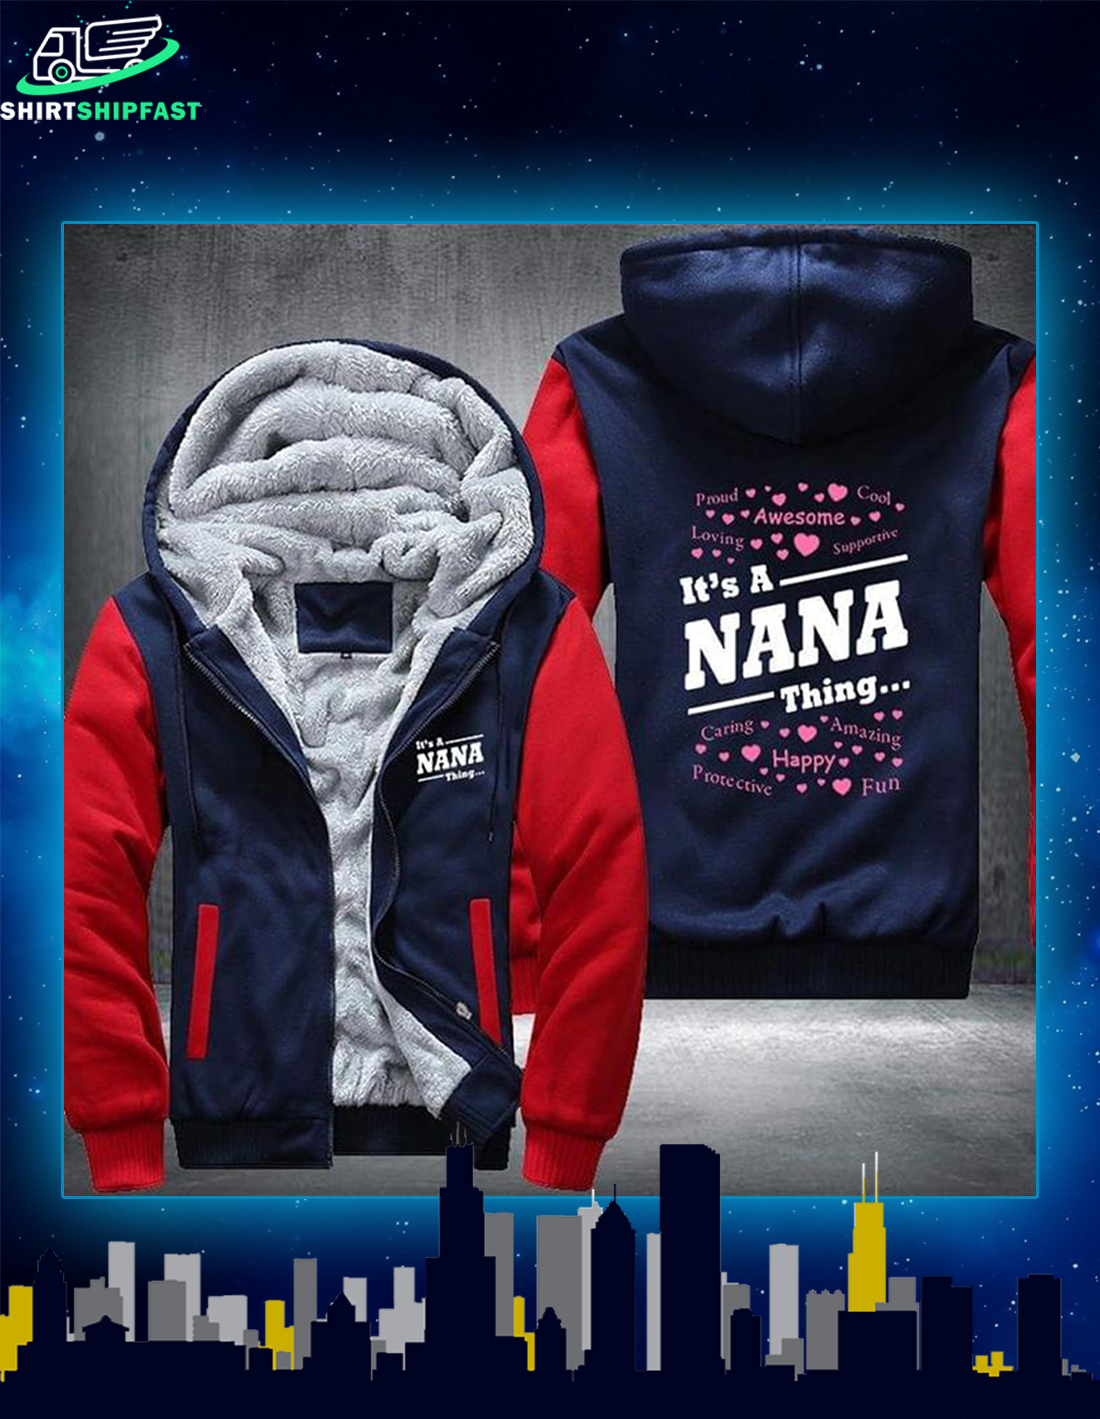 It's a nana thing fleece hoodie - Picture 2